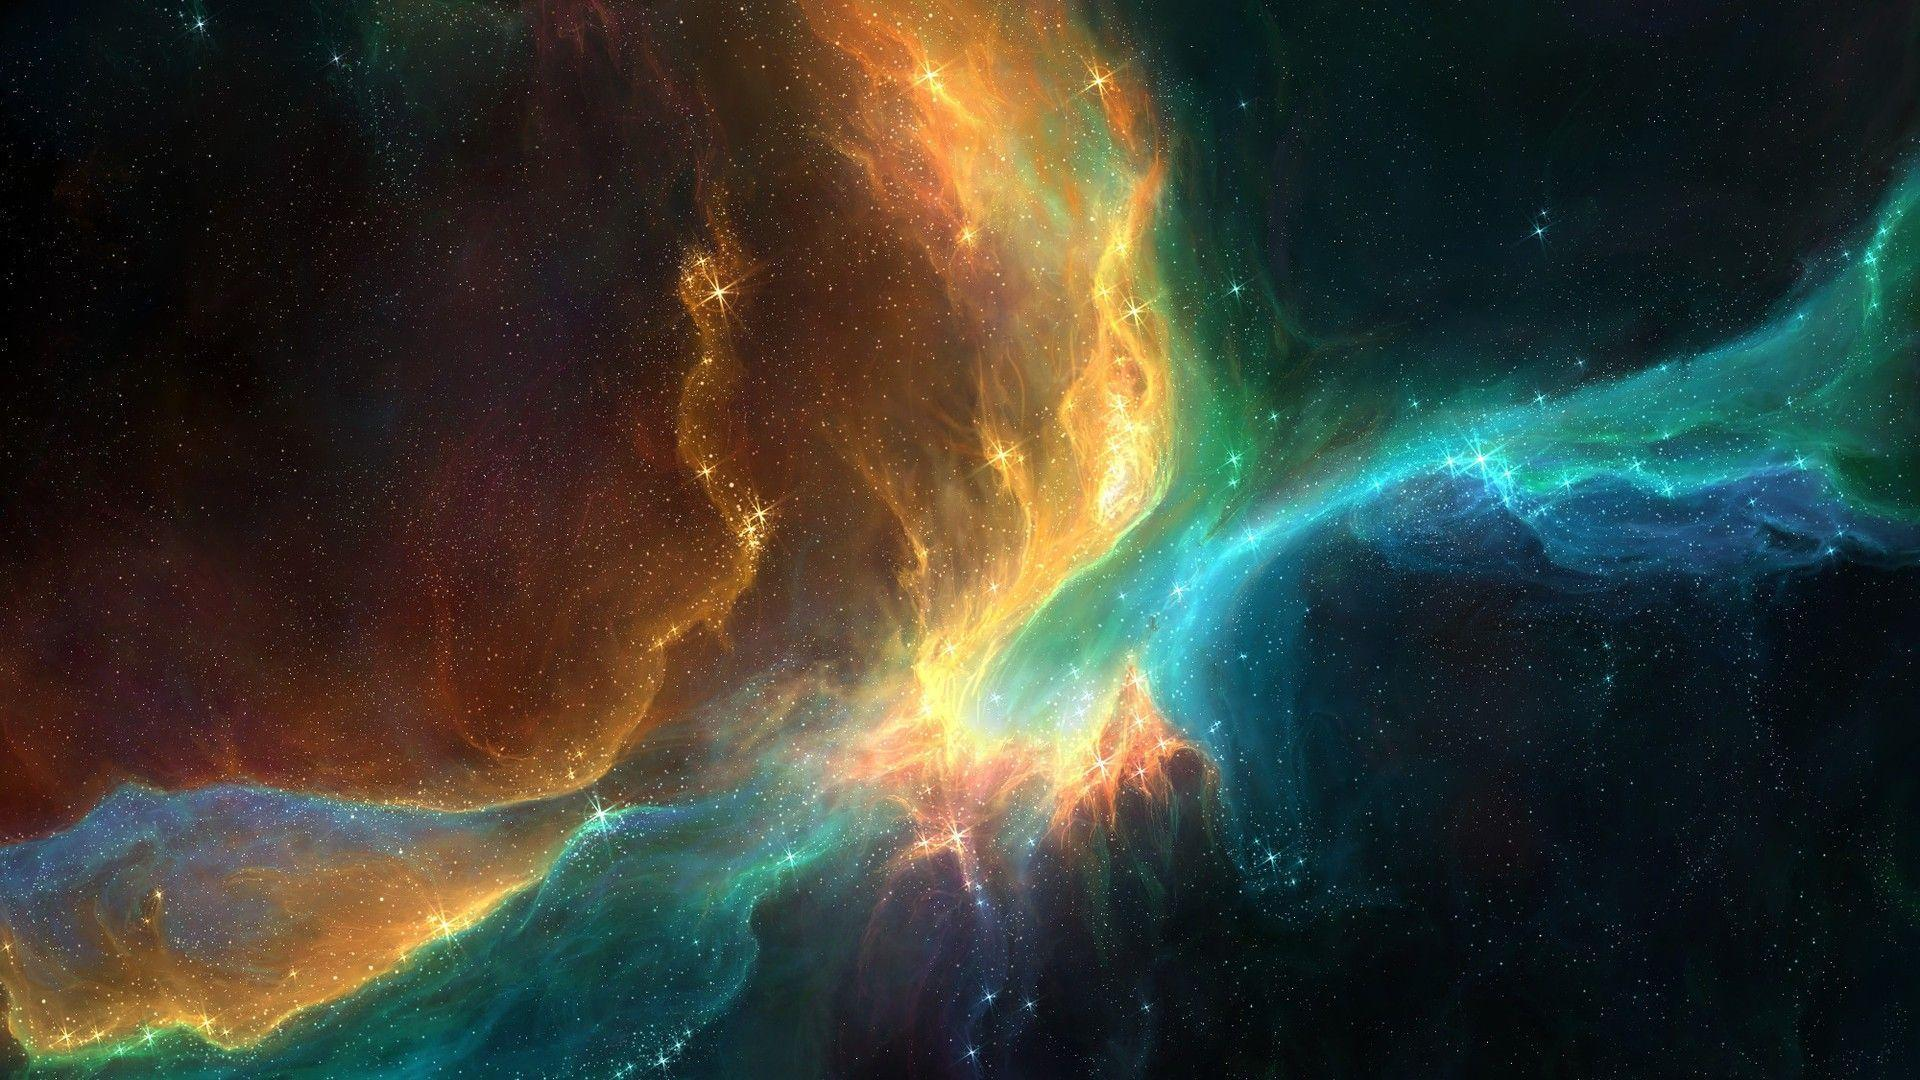 space desktop wallpaper backgrounds - photo #16